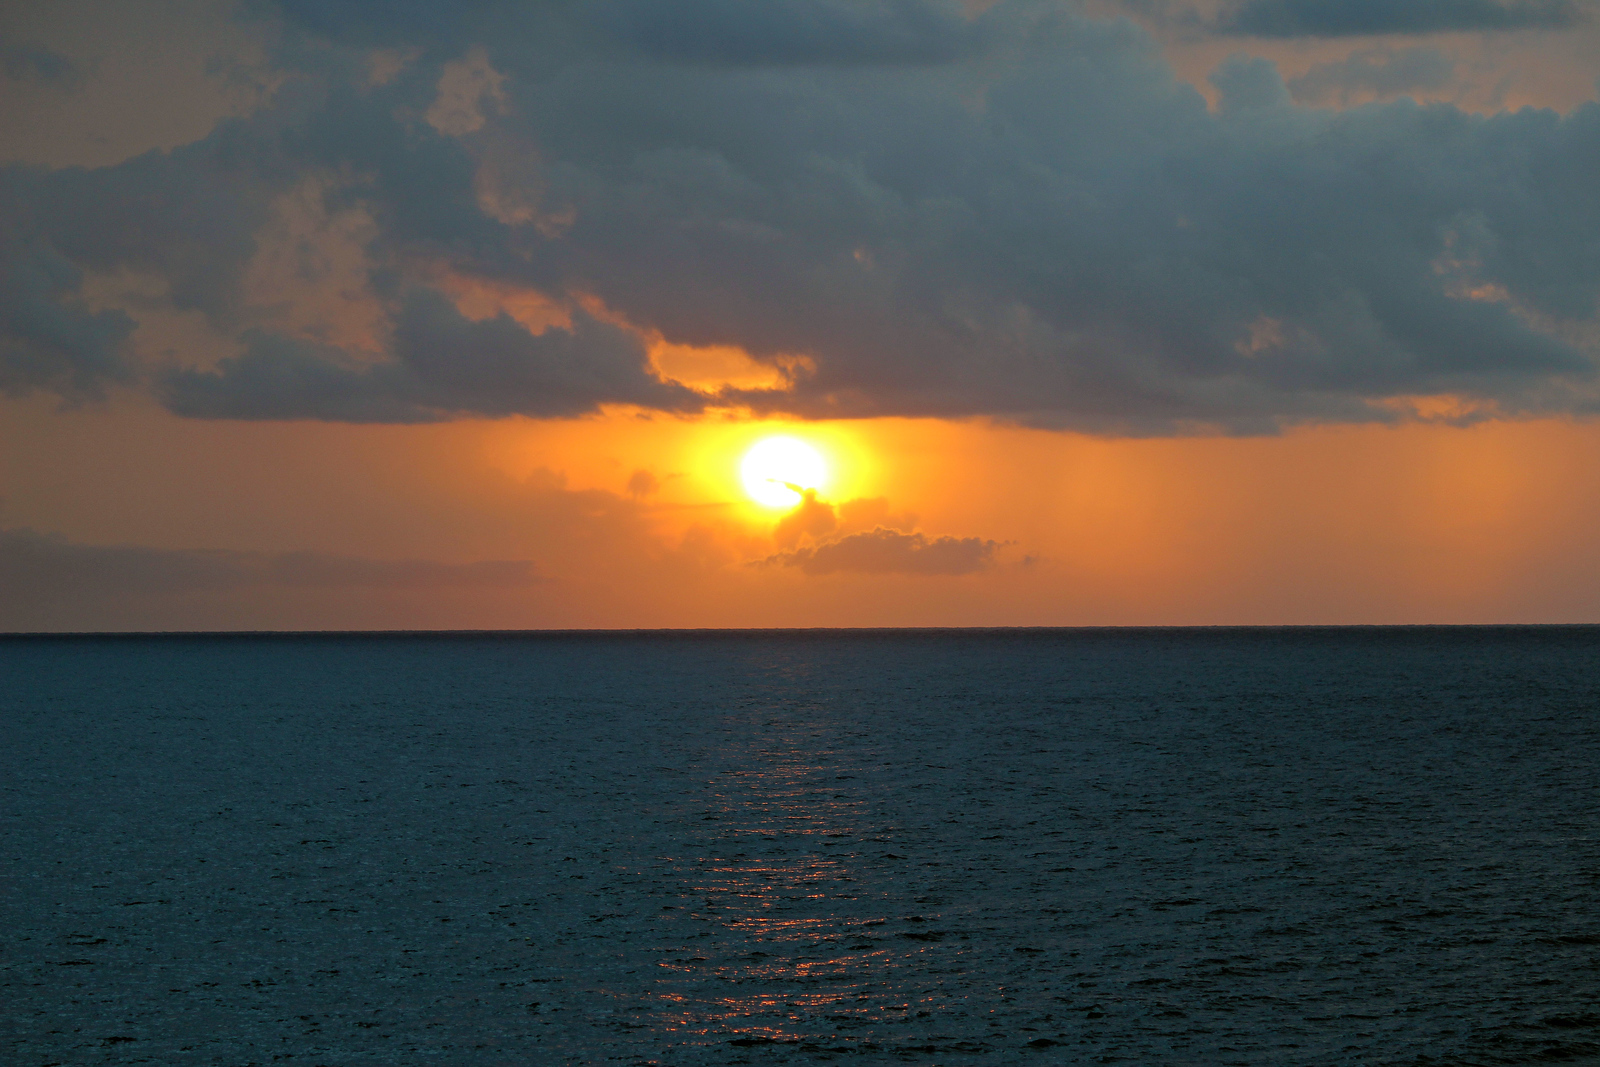 The sunset at Ricks Cafe Jamaica - Negril, Jamaica